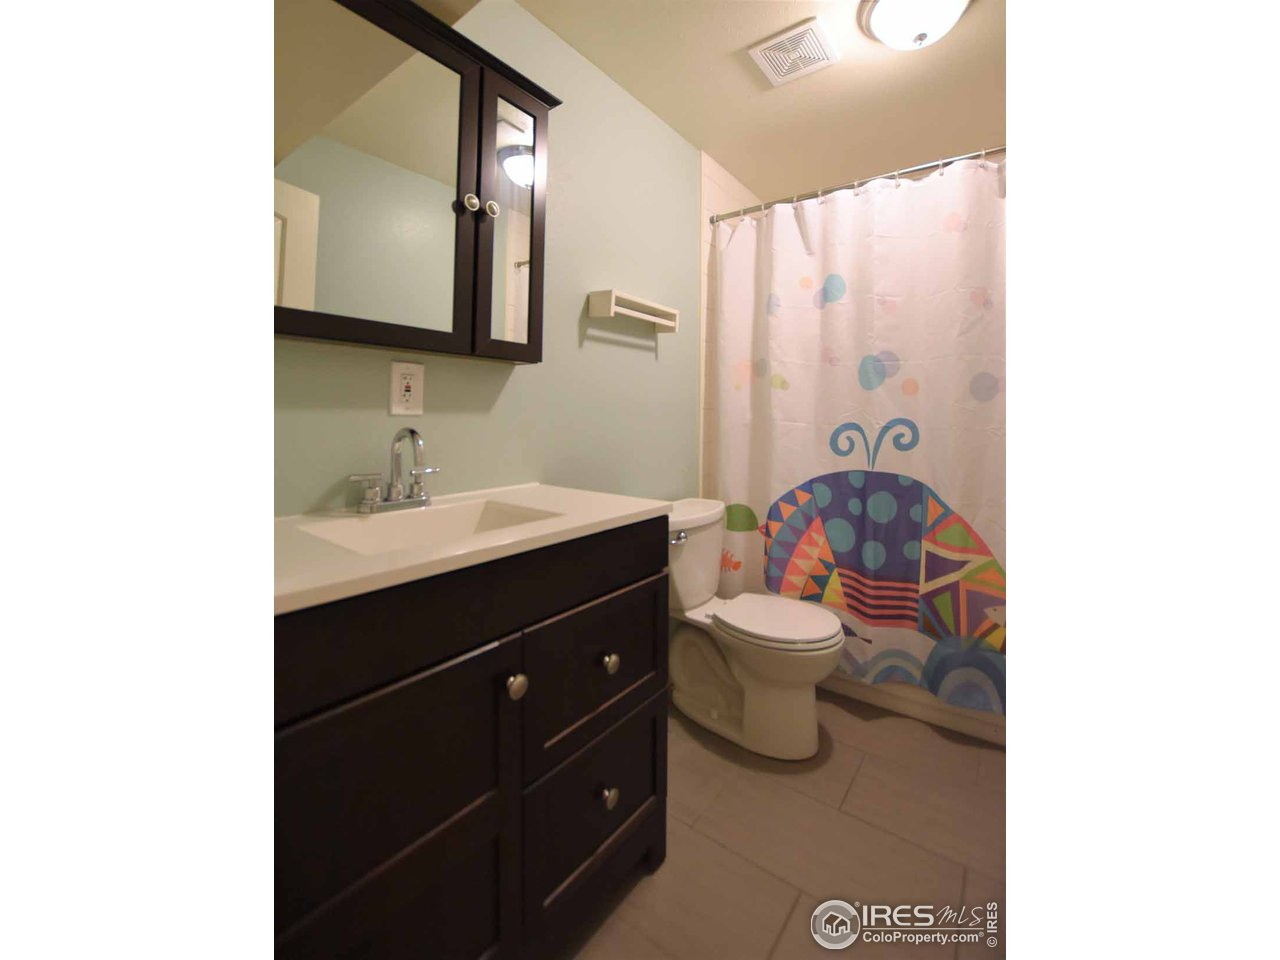 Basement bath with the same great updates!